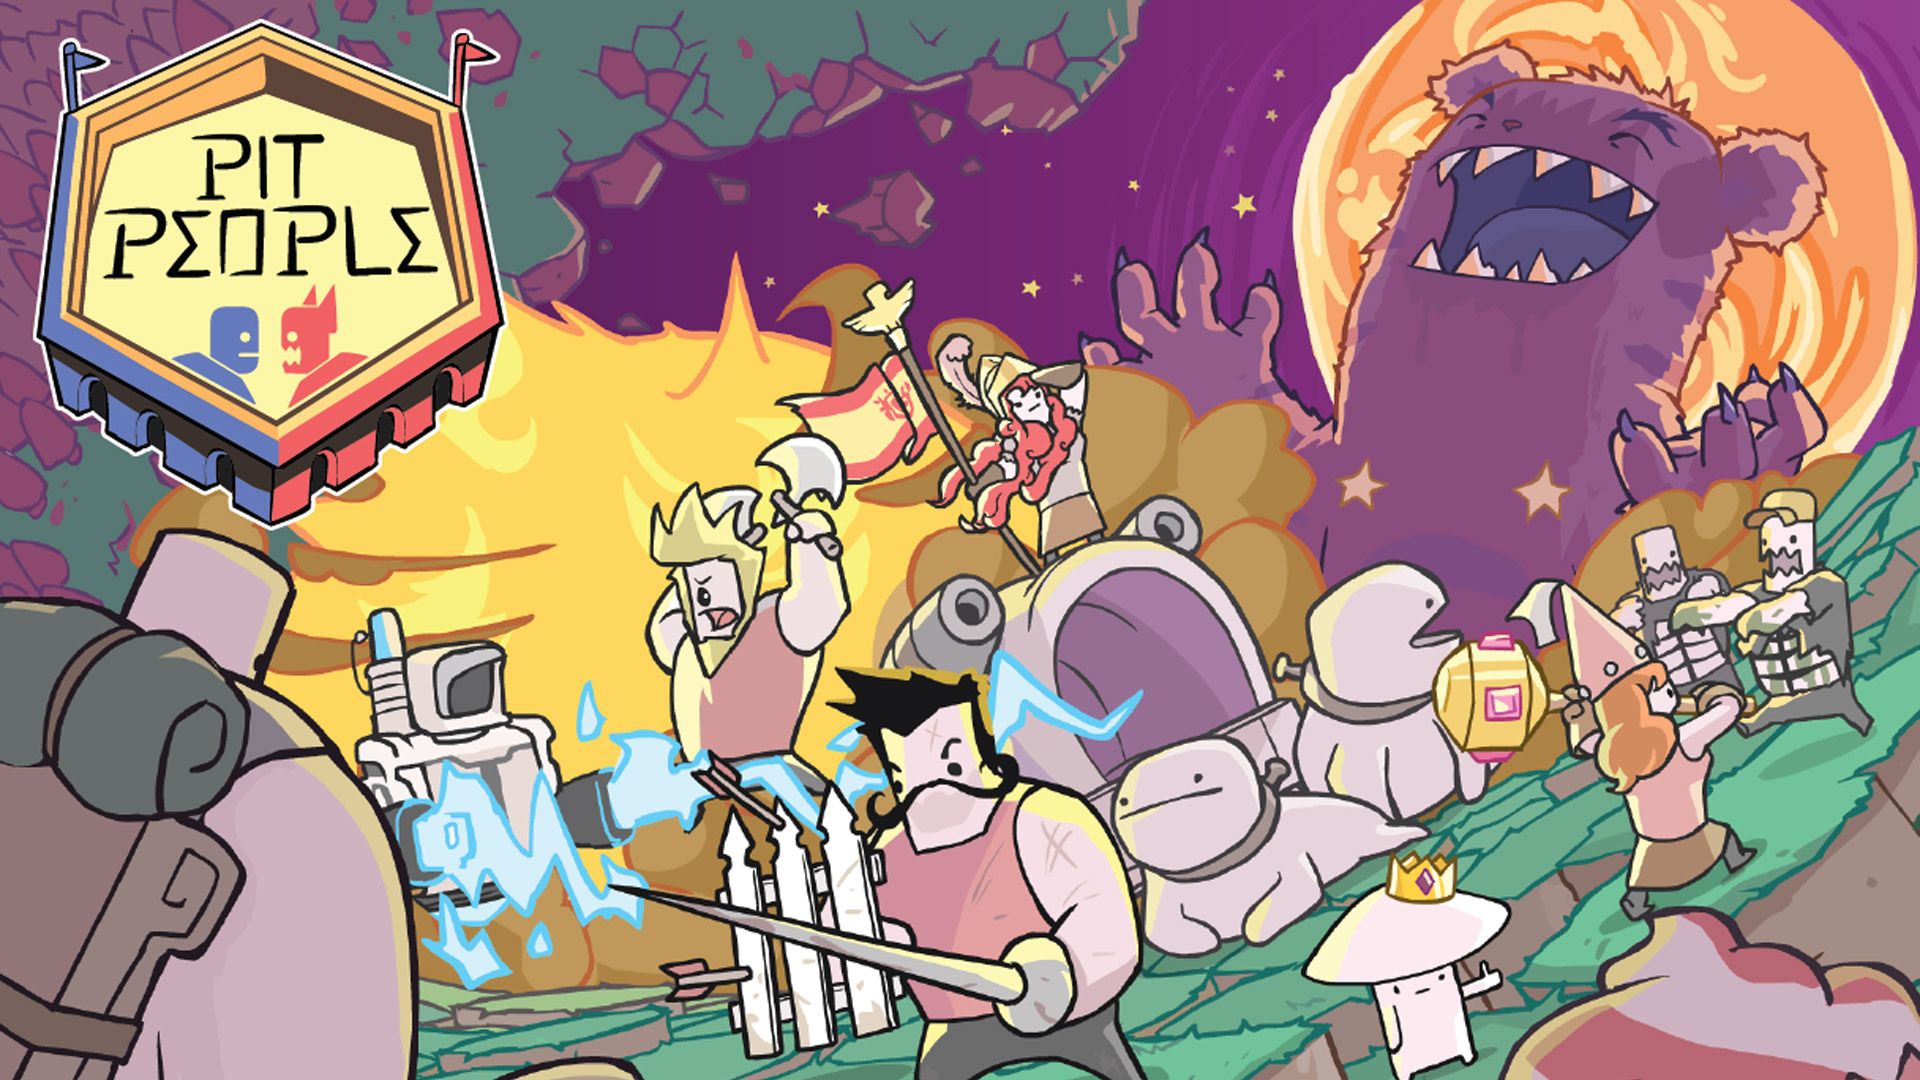 Pit People Wallpaper in 1920x1080